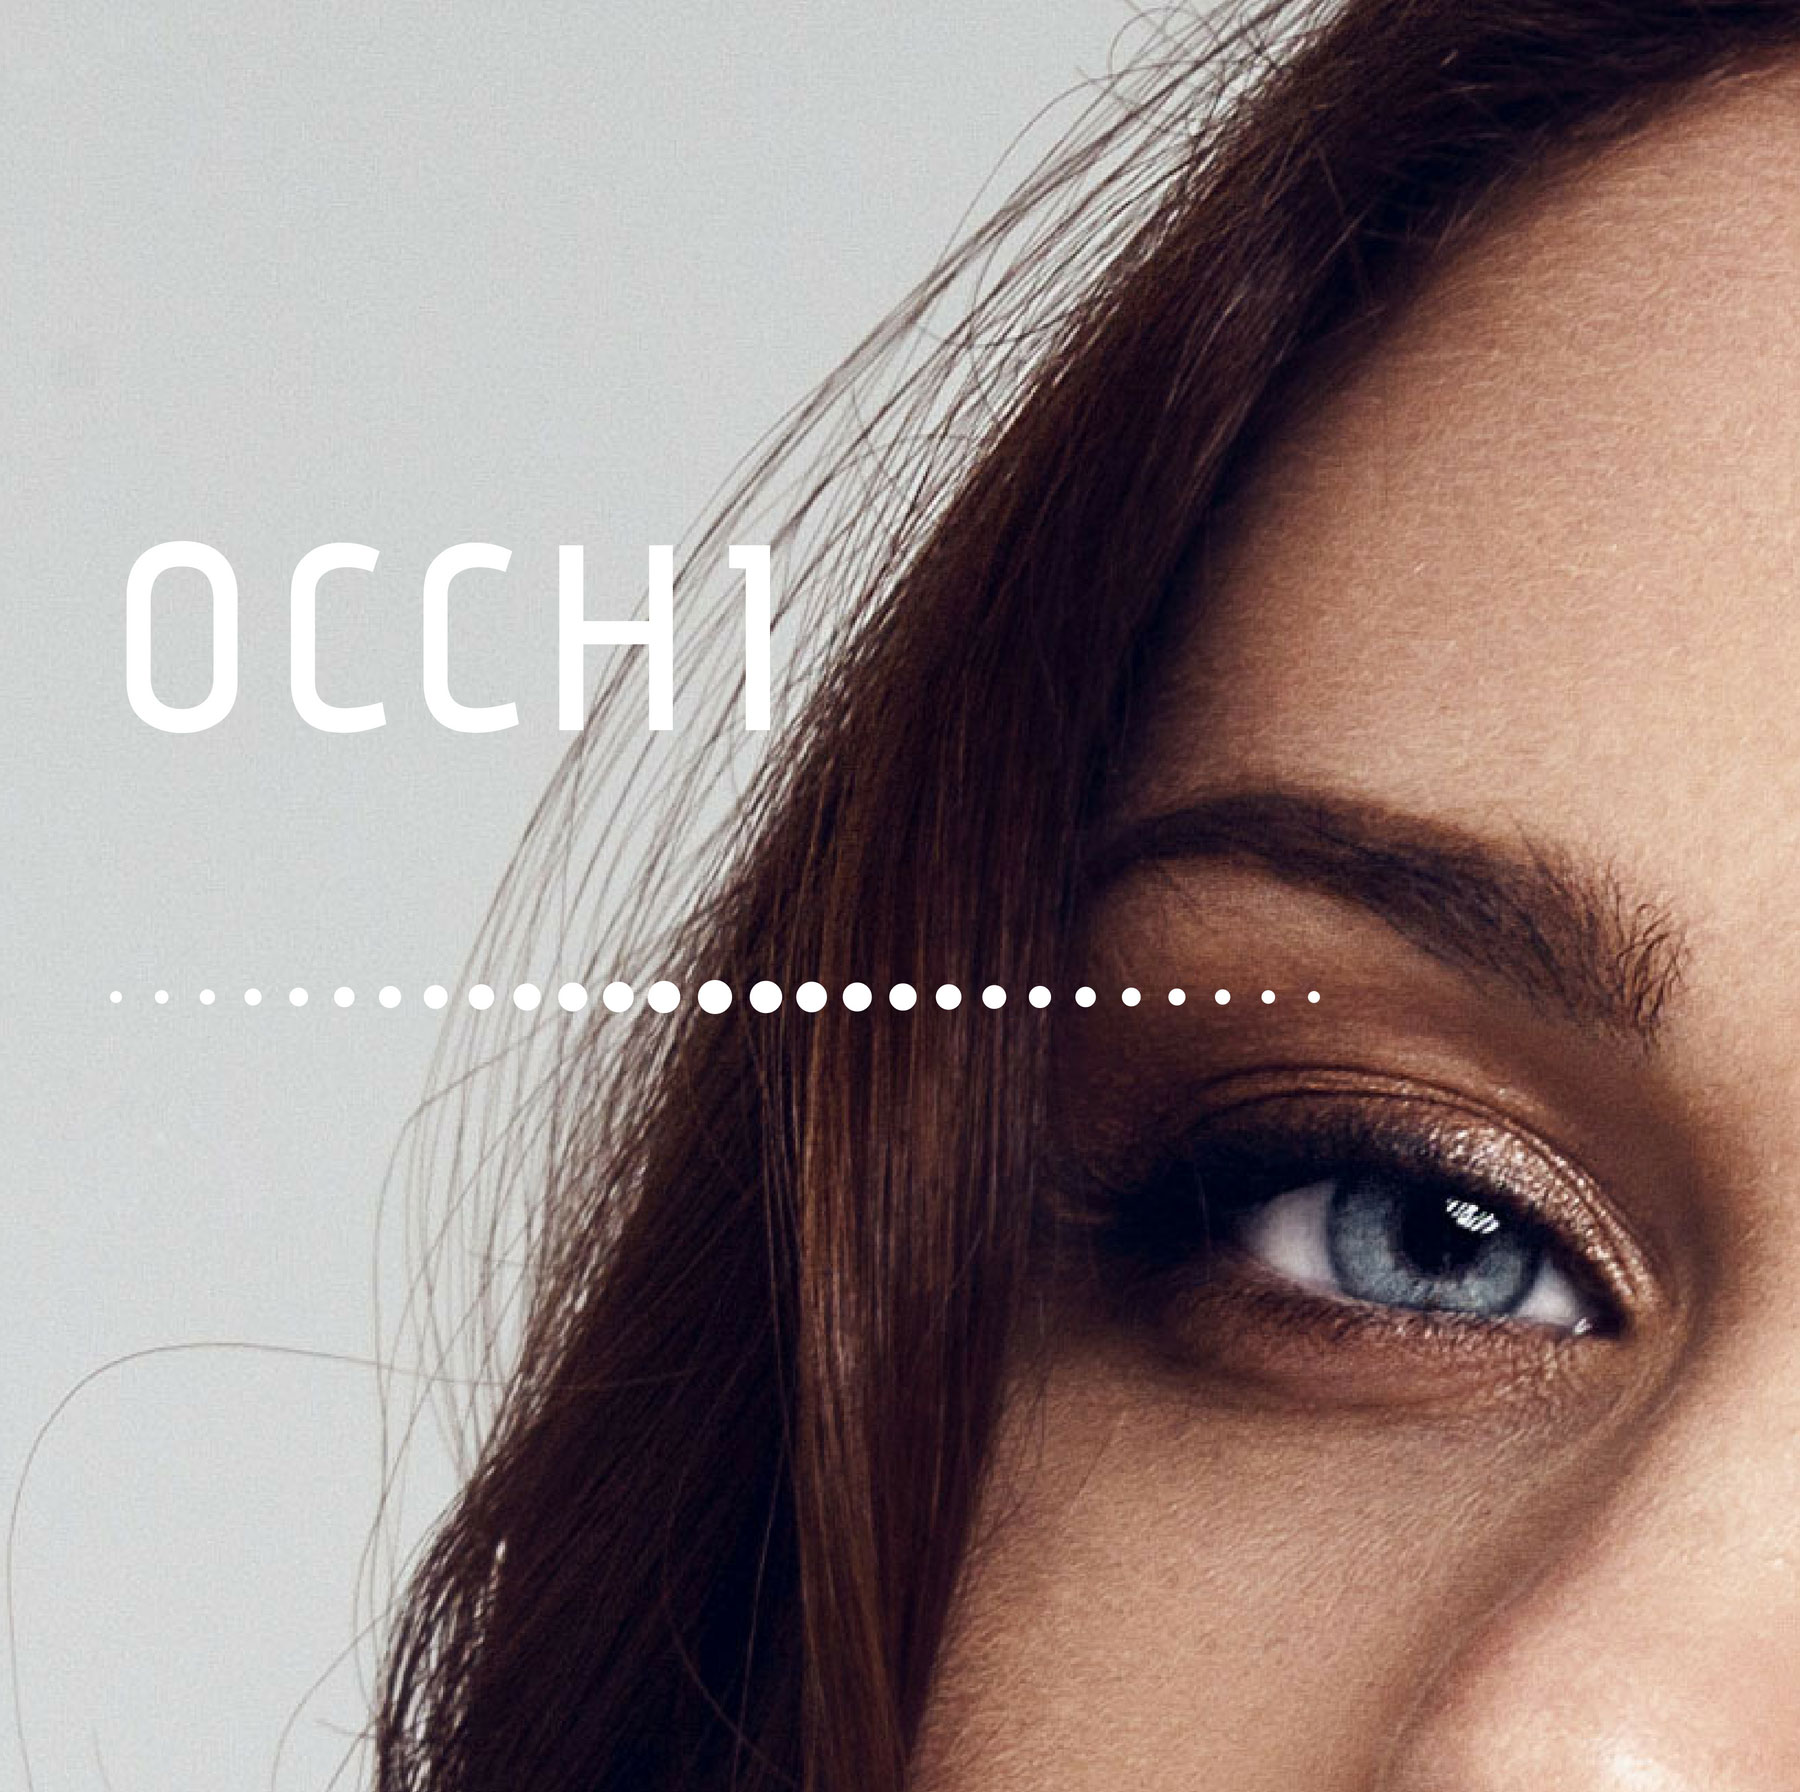 Il make up occhi biologico nickel free e dermatologicamente testato